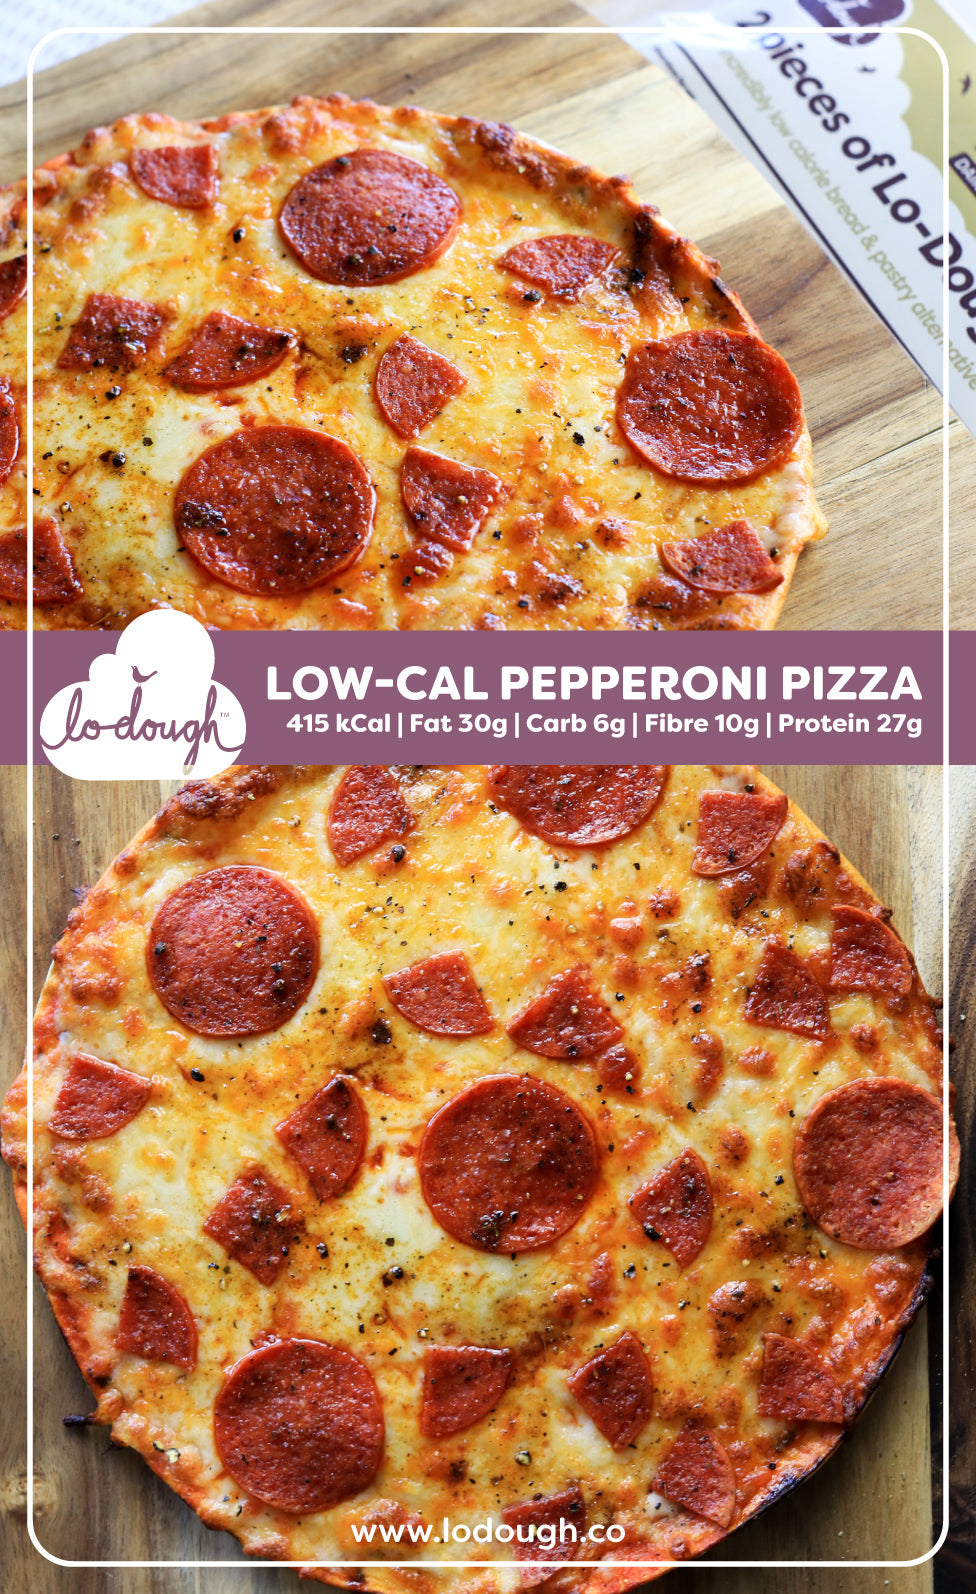 Low-Calorie Pizza